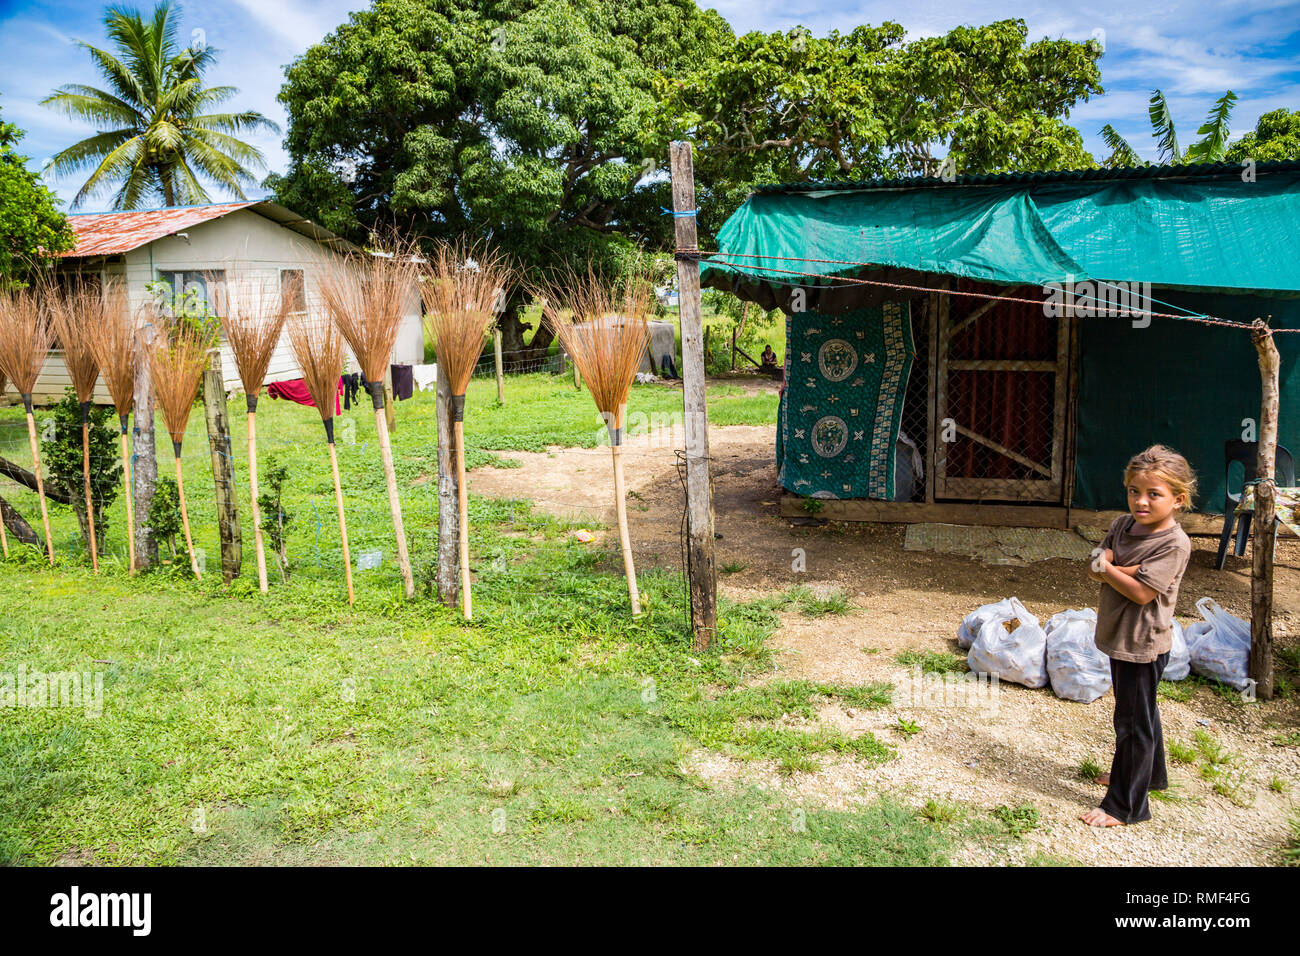 Tongatapu, Tonga - Jan 4 2014: a small local native indigenous Polynesian girl sells hand made brooms and plastic bags with sweet potato kumara. A poo - Stock Image